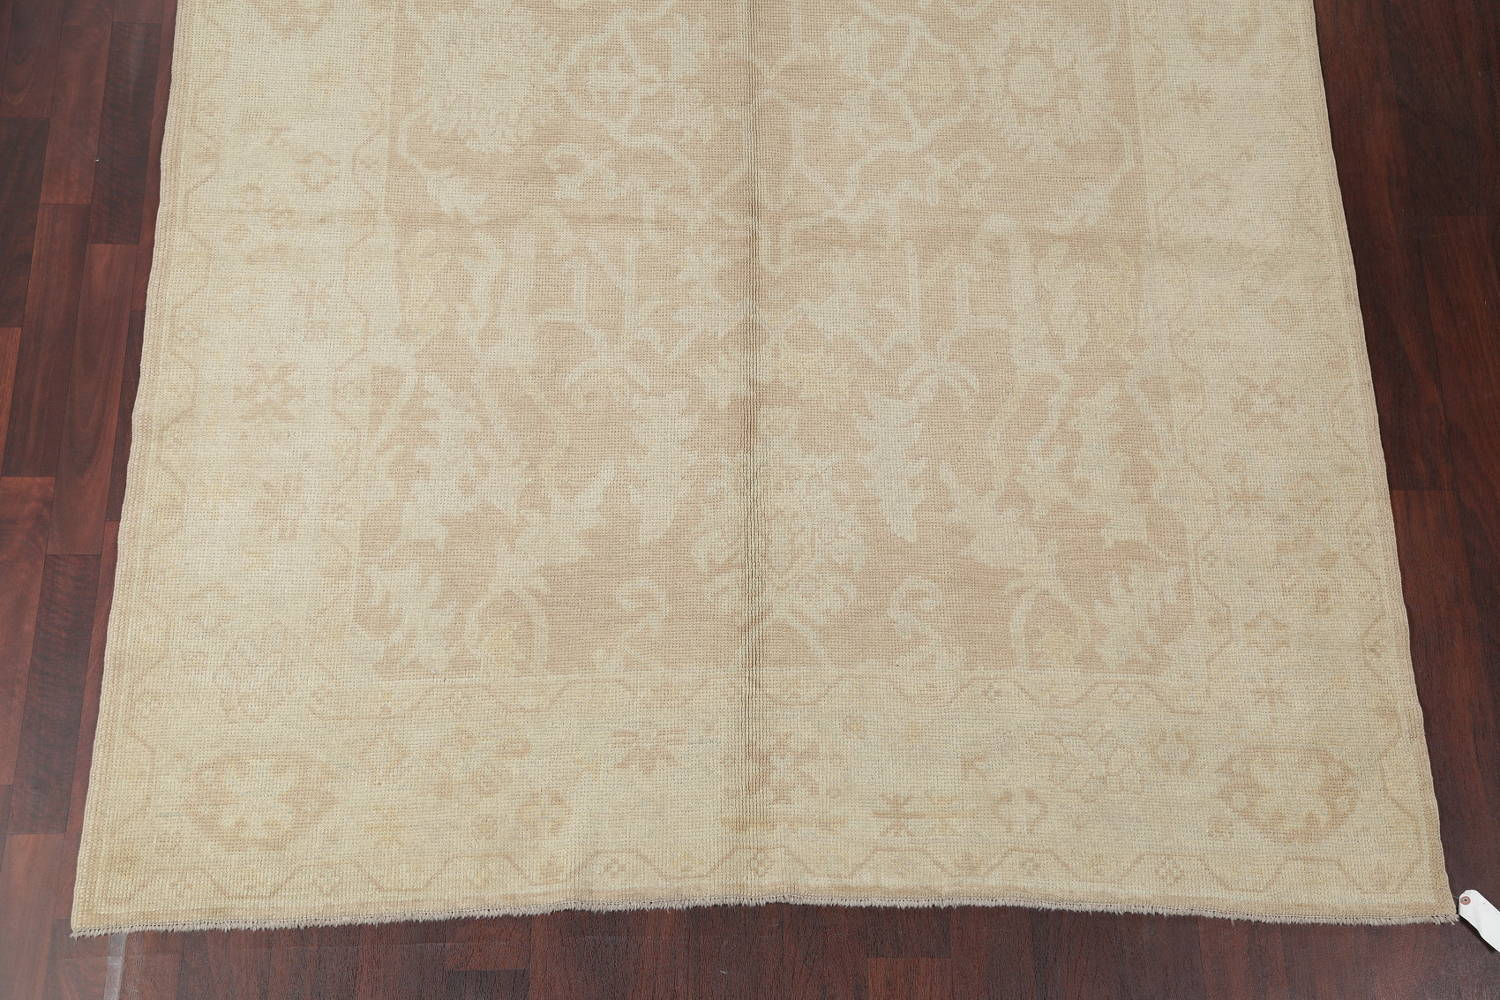 Vegetable Dye Muted Gold Oushak Turkish Hand-Knotted Runner Rug 7x16 image 5